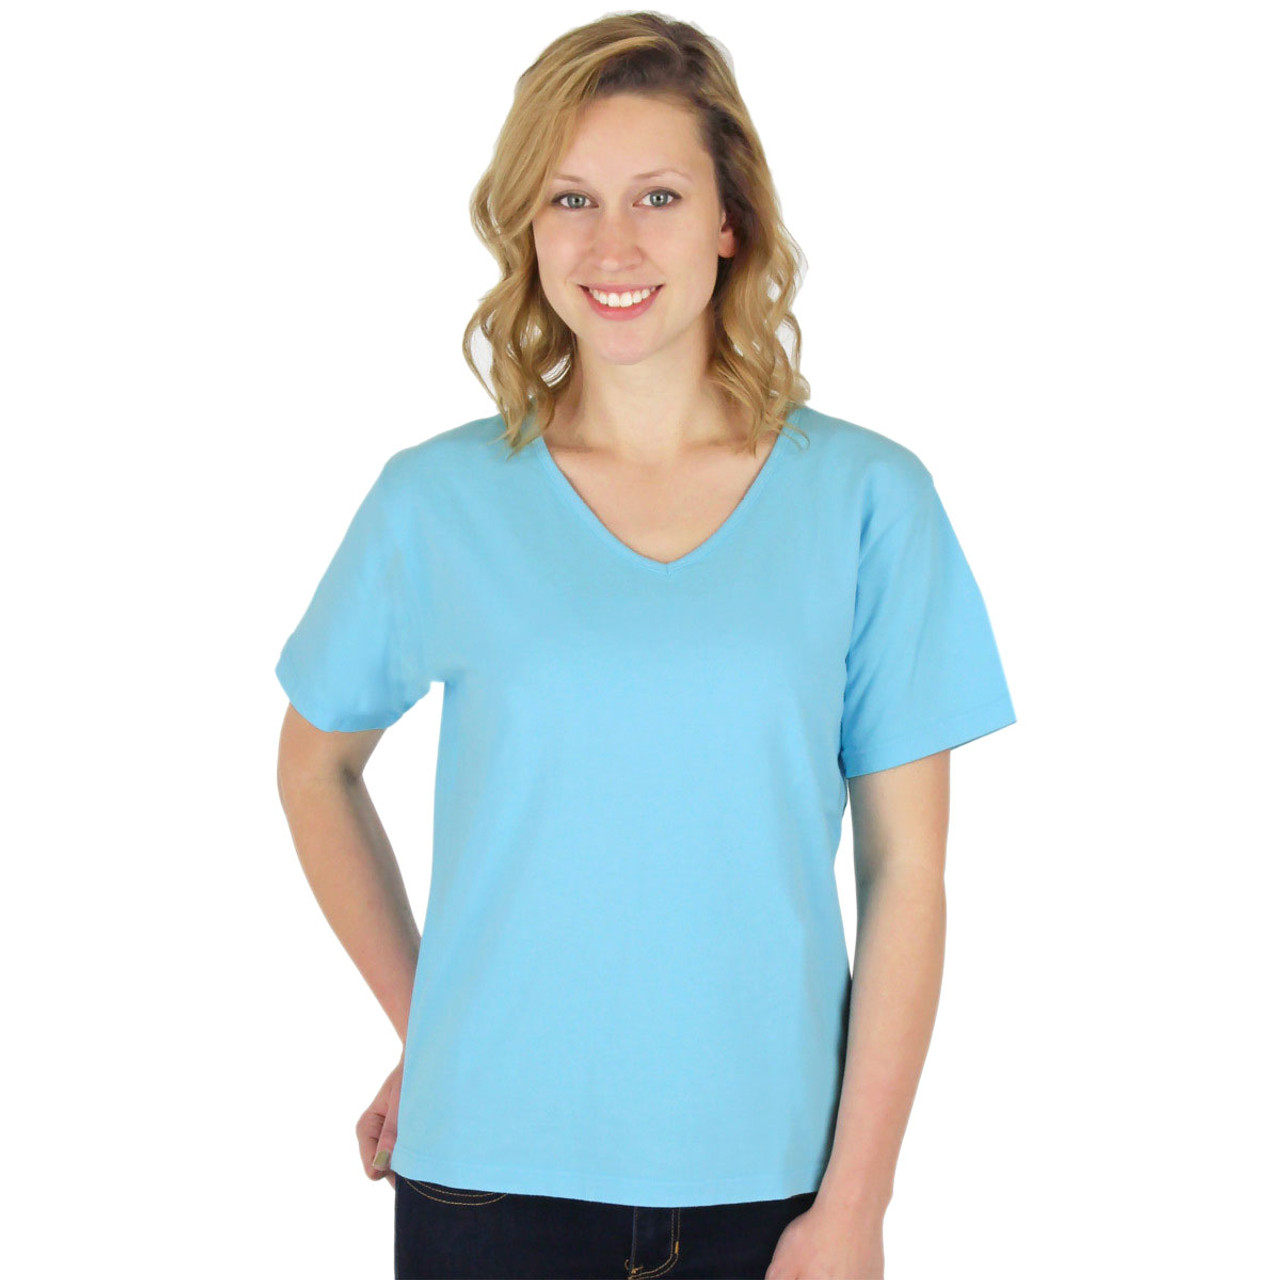 3664920fe55e6a Women's Cotton Shirts | Short Sleeve Tees | ICanToo Cotton Clothing Made in  USA